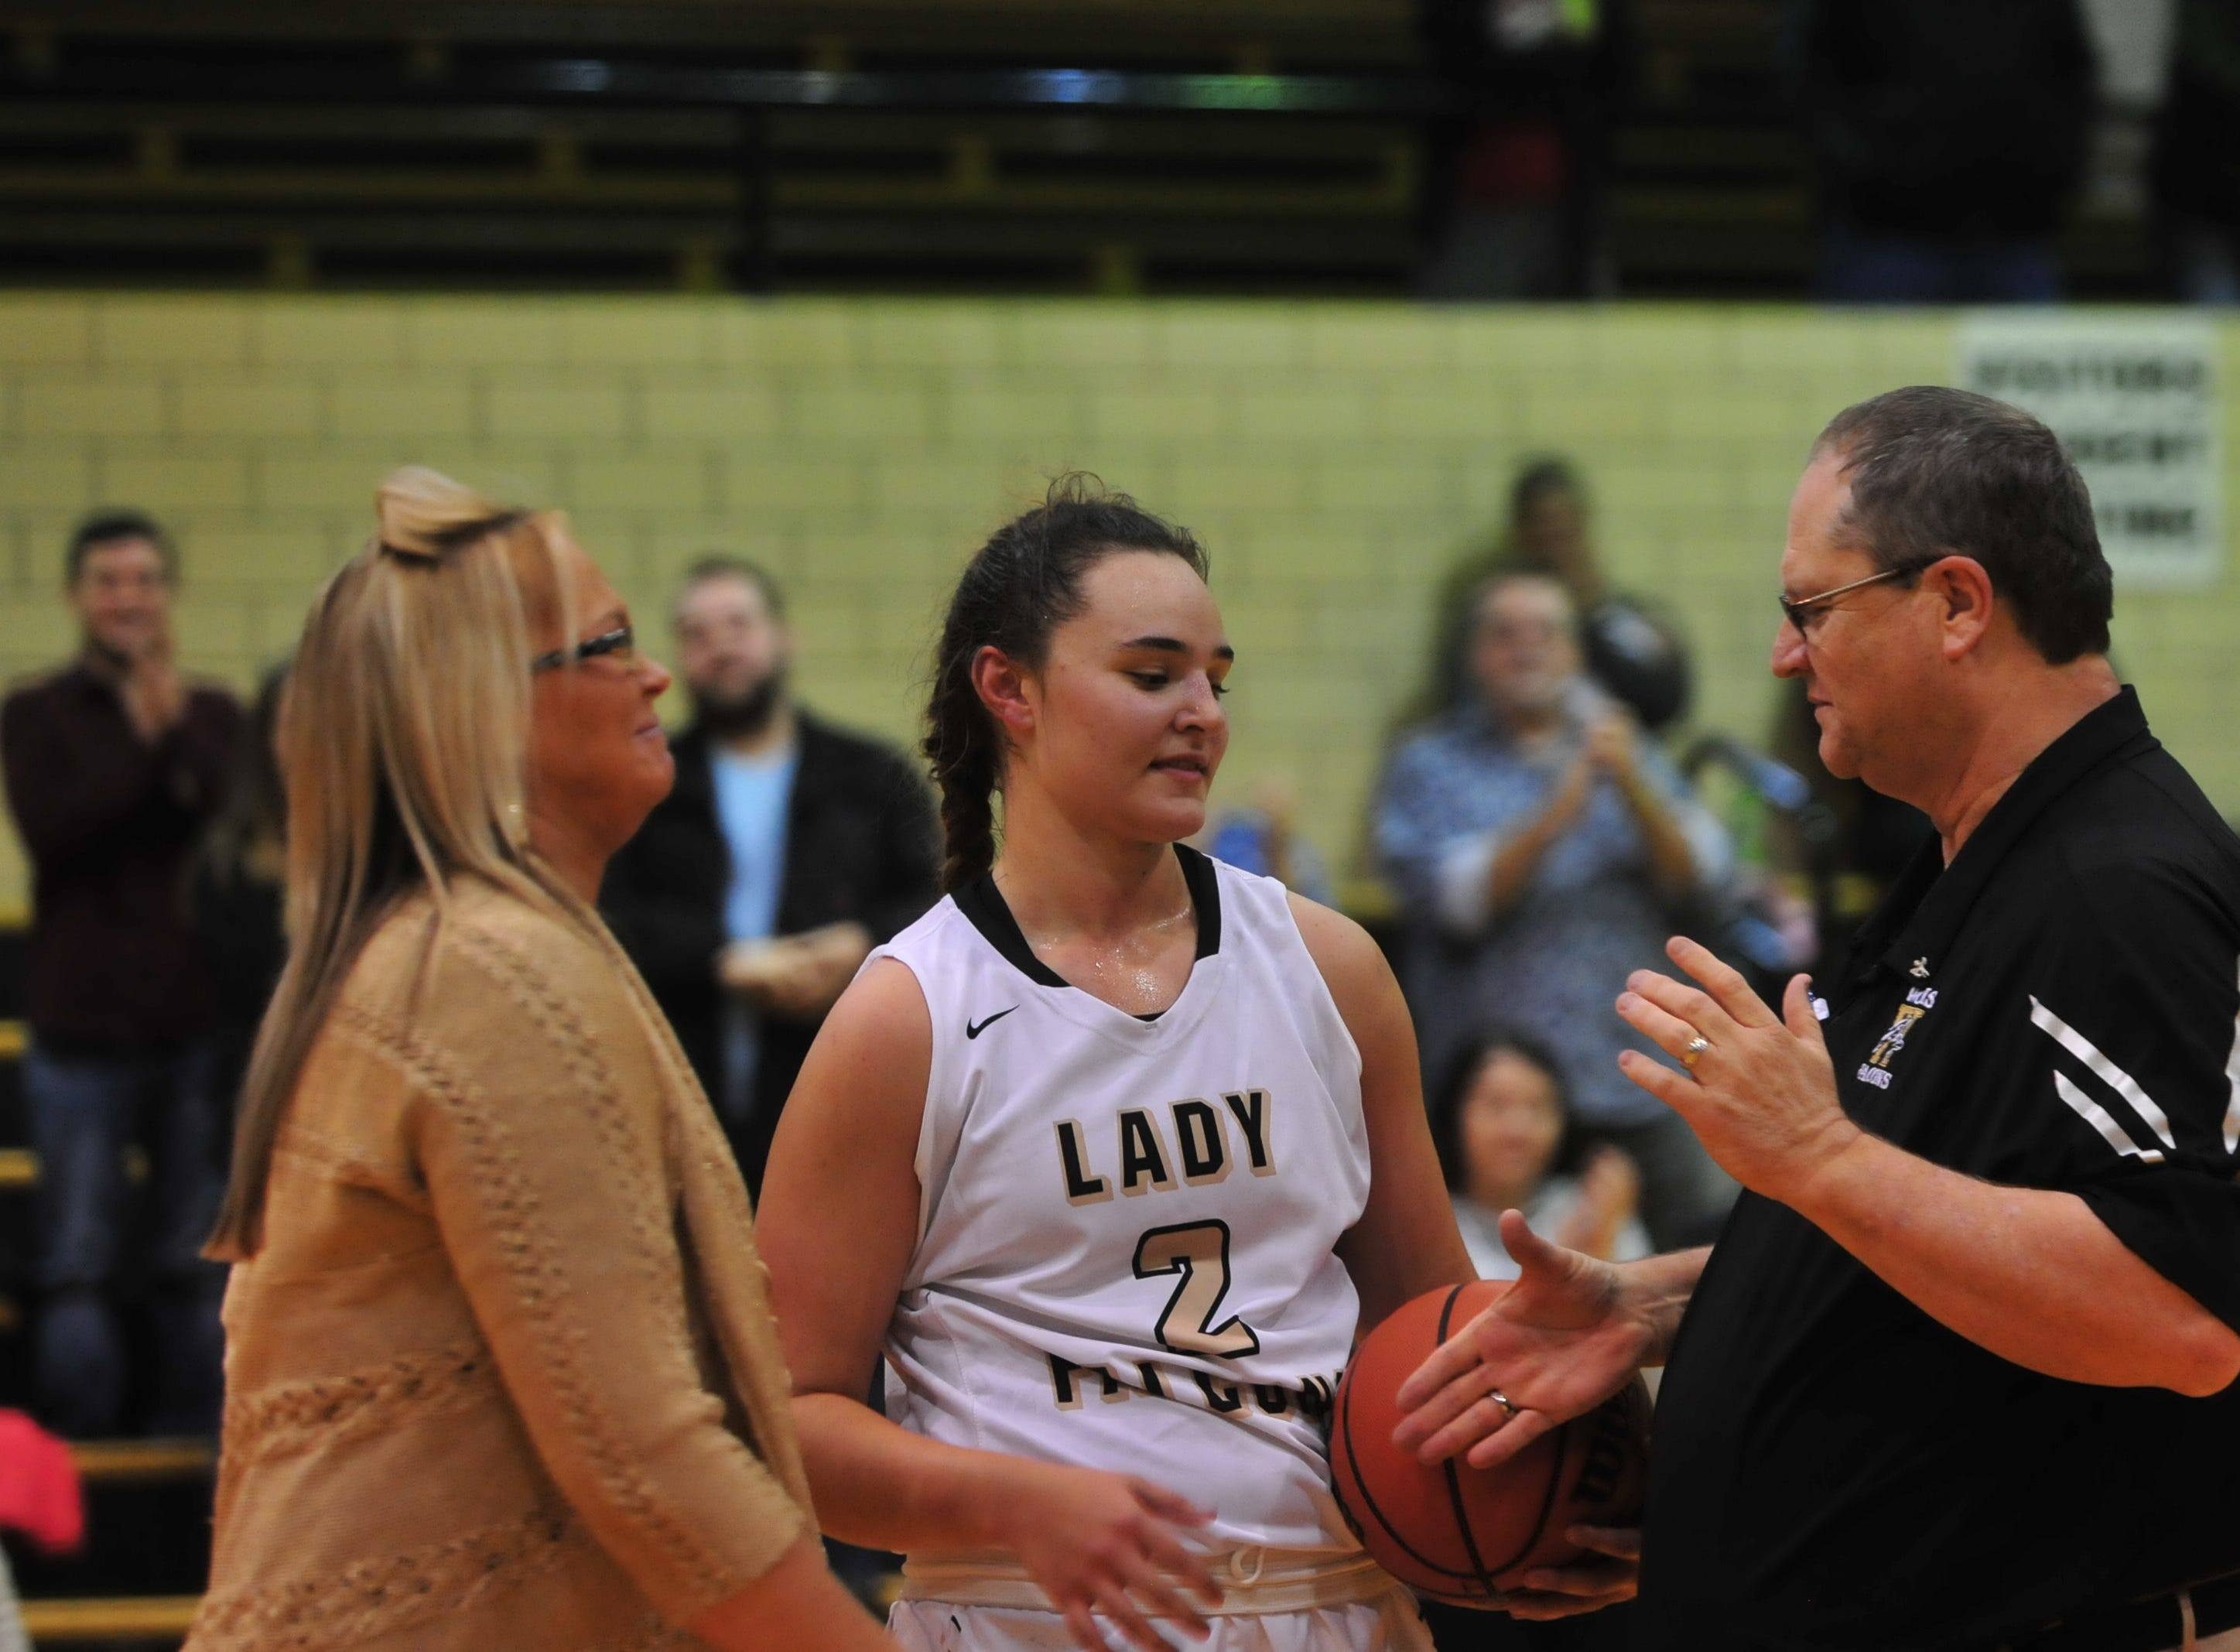 Winchester's Maddie Lawrence (2) shakes hands with assistant coach Jim Hollinger, right, as head coach Holly Gutierrez smiles. Lawrence was honored for scoring her 1,000th career point during halftime of an 84-44 girls basketball win over Knightstown Friday, Nov. 9, 2018 at Winchester Fieldhouse.